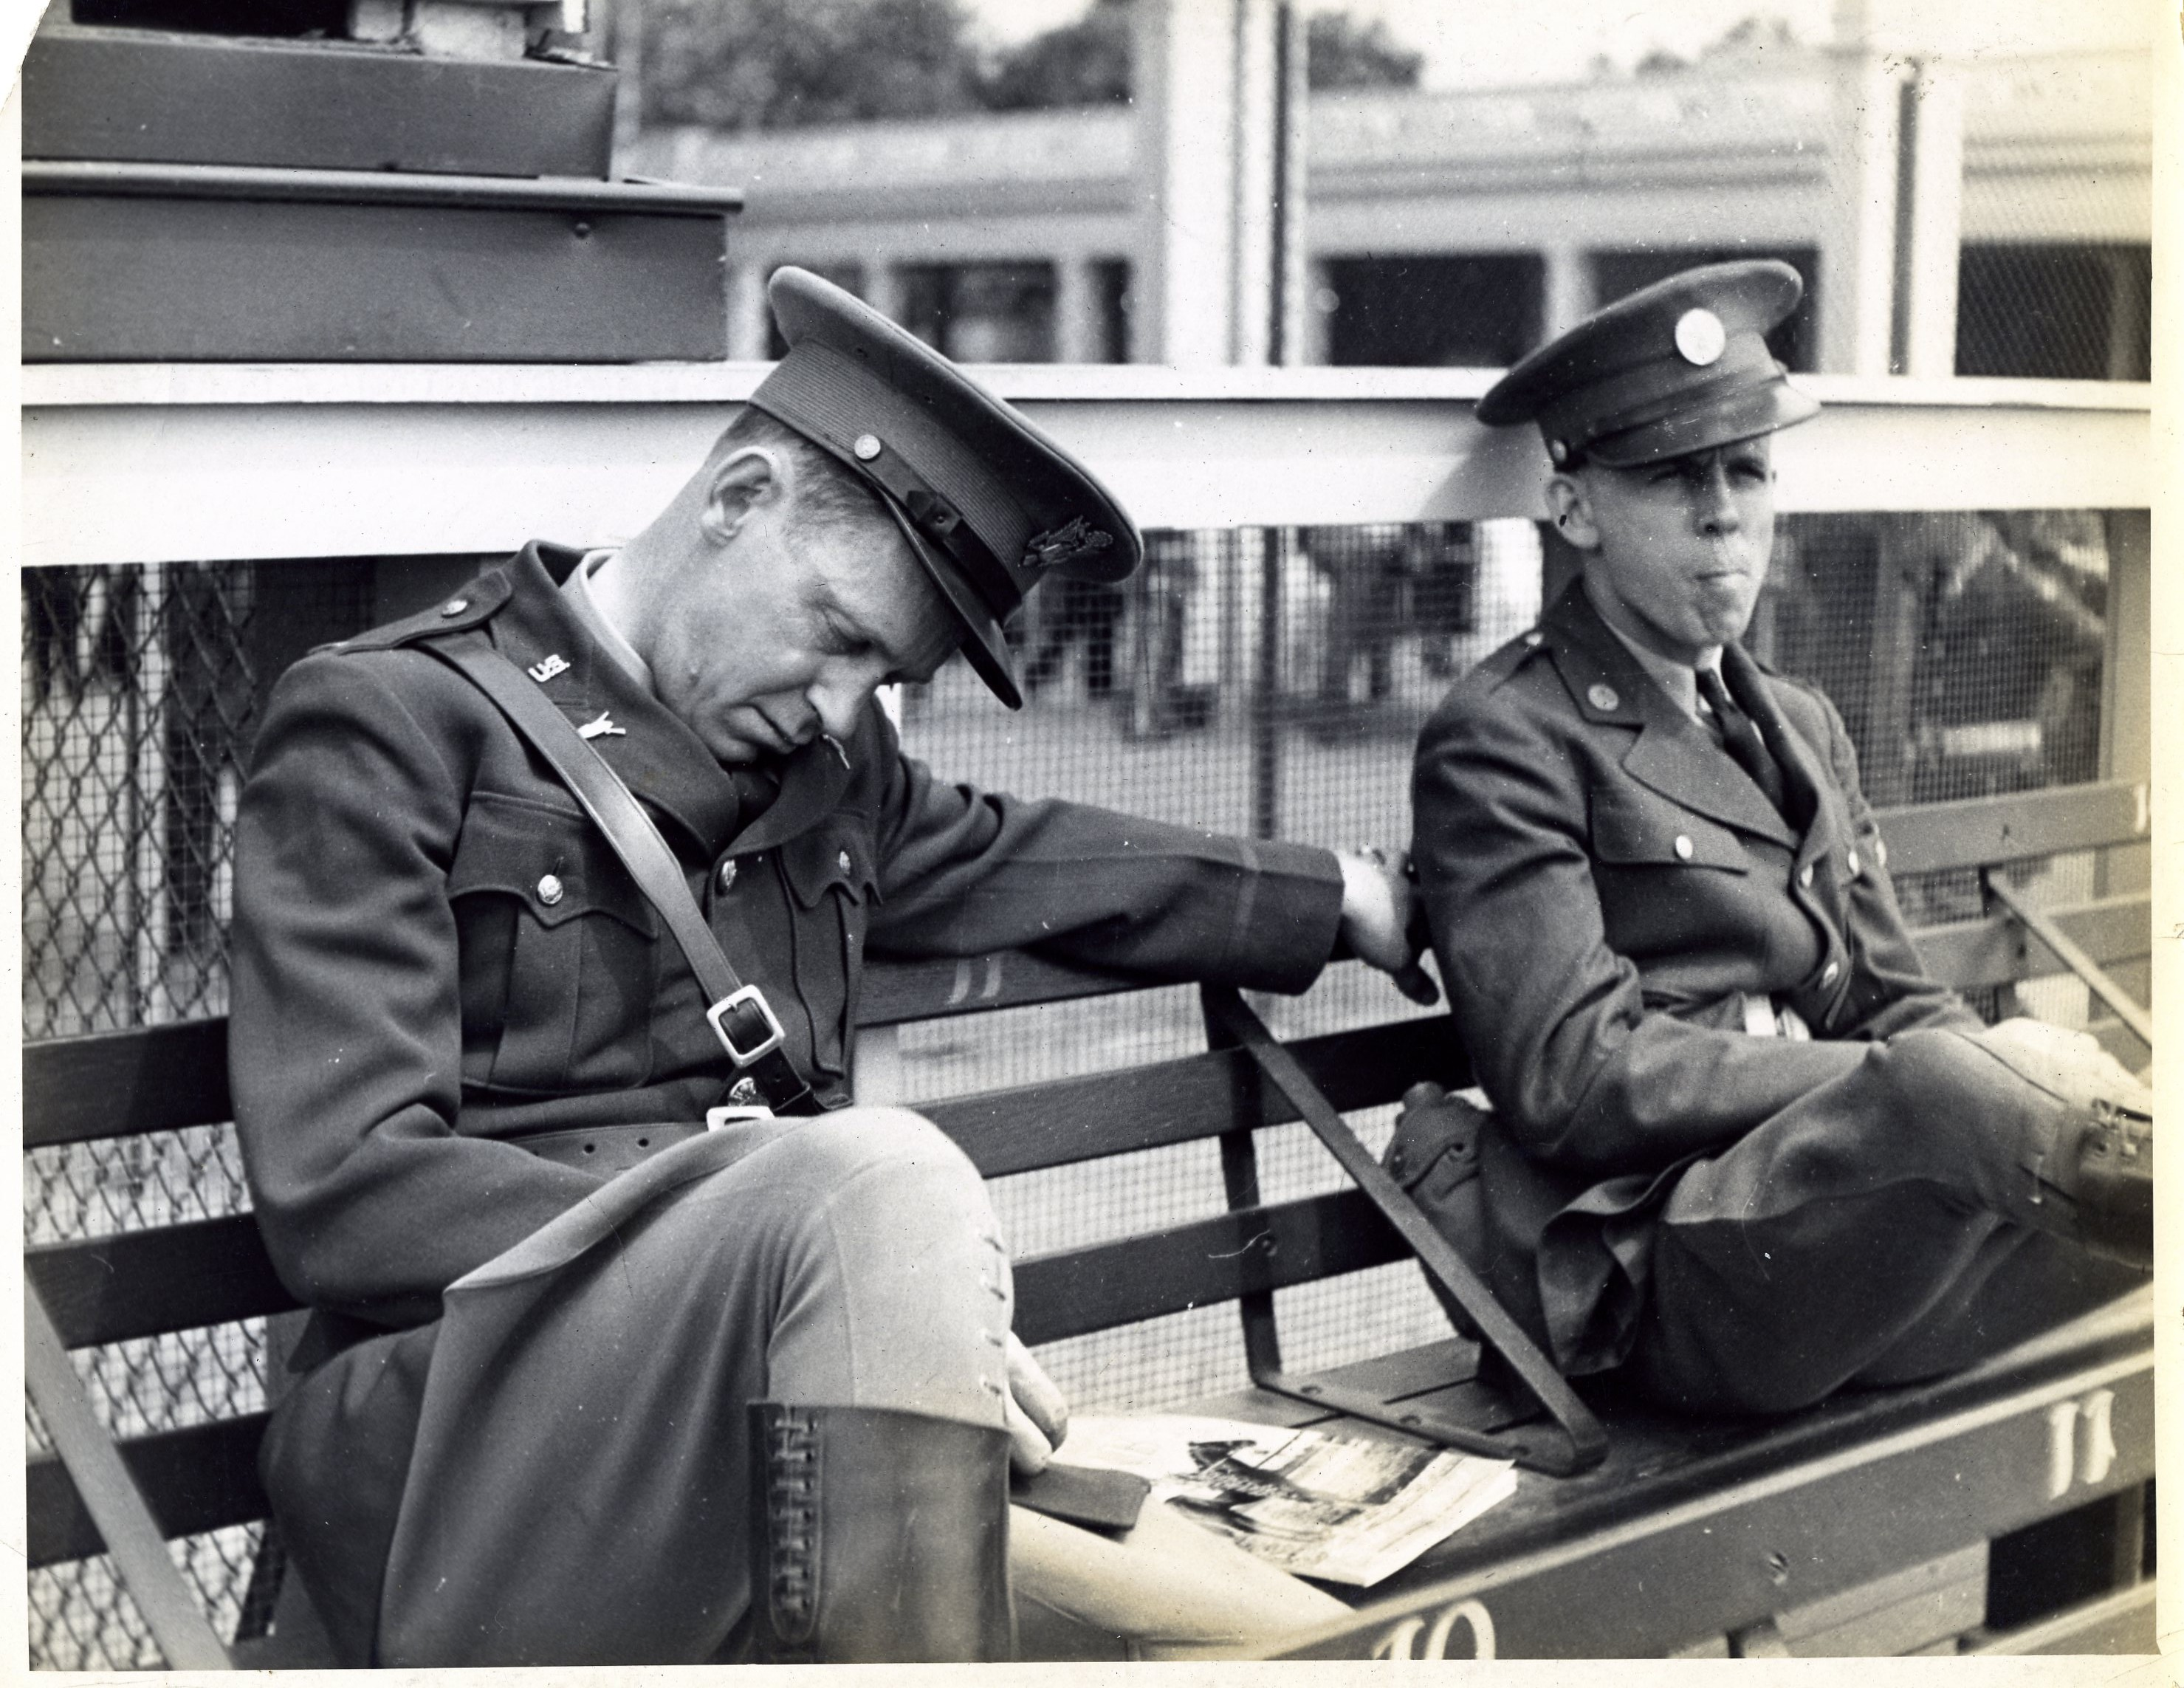 Ky Derby. Lt Truman Mayes asleep,  Edwin Elliott, eating peanuts at 8 a.m. Waiting for crowd, Co. D,